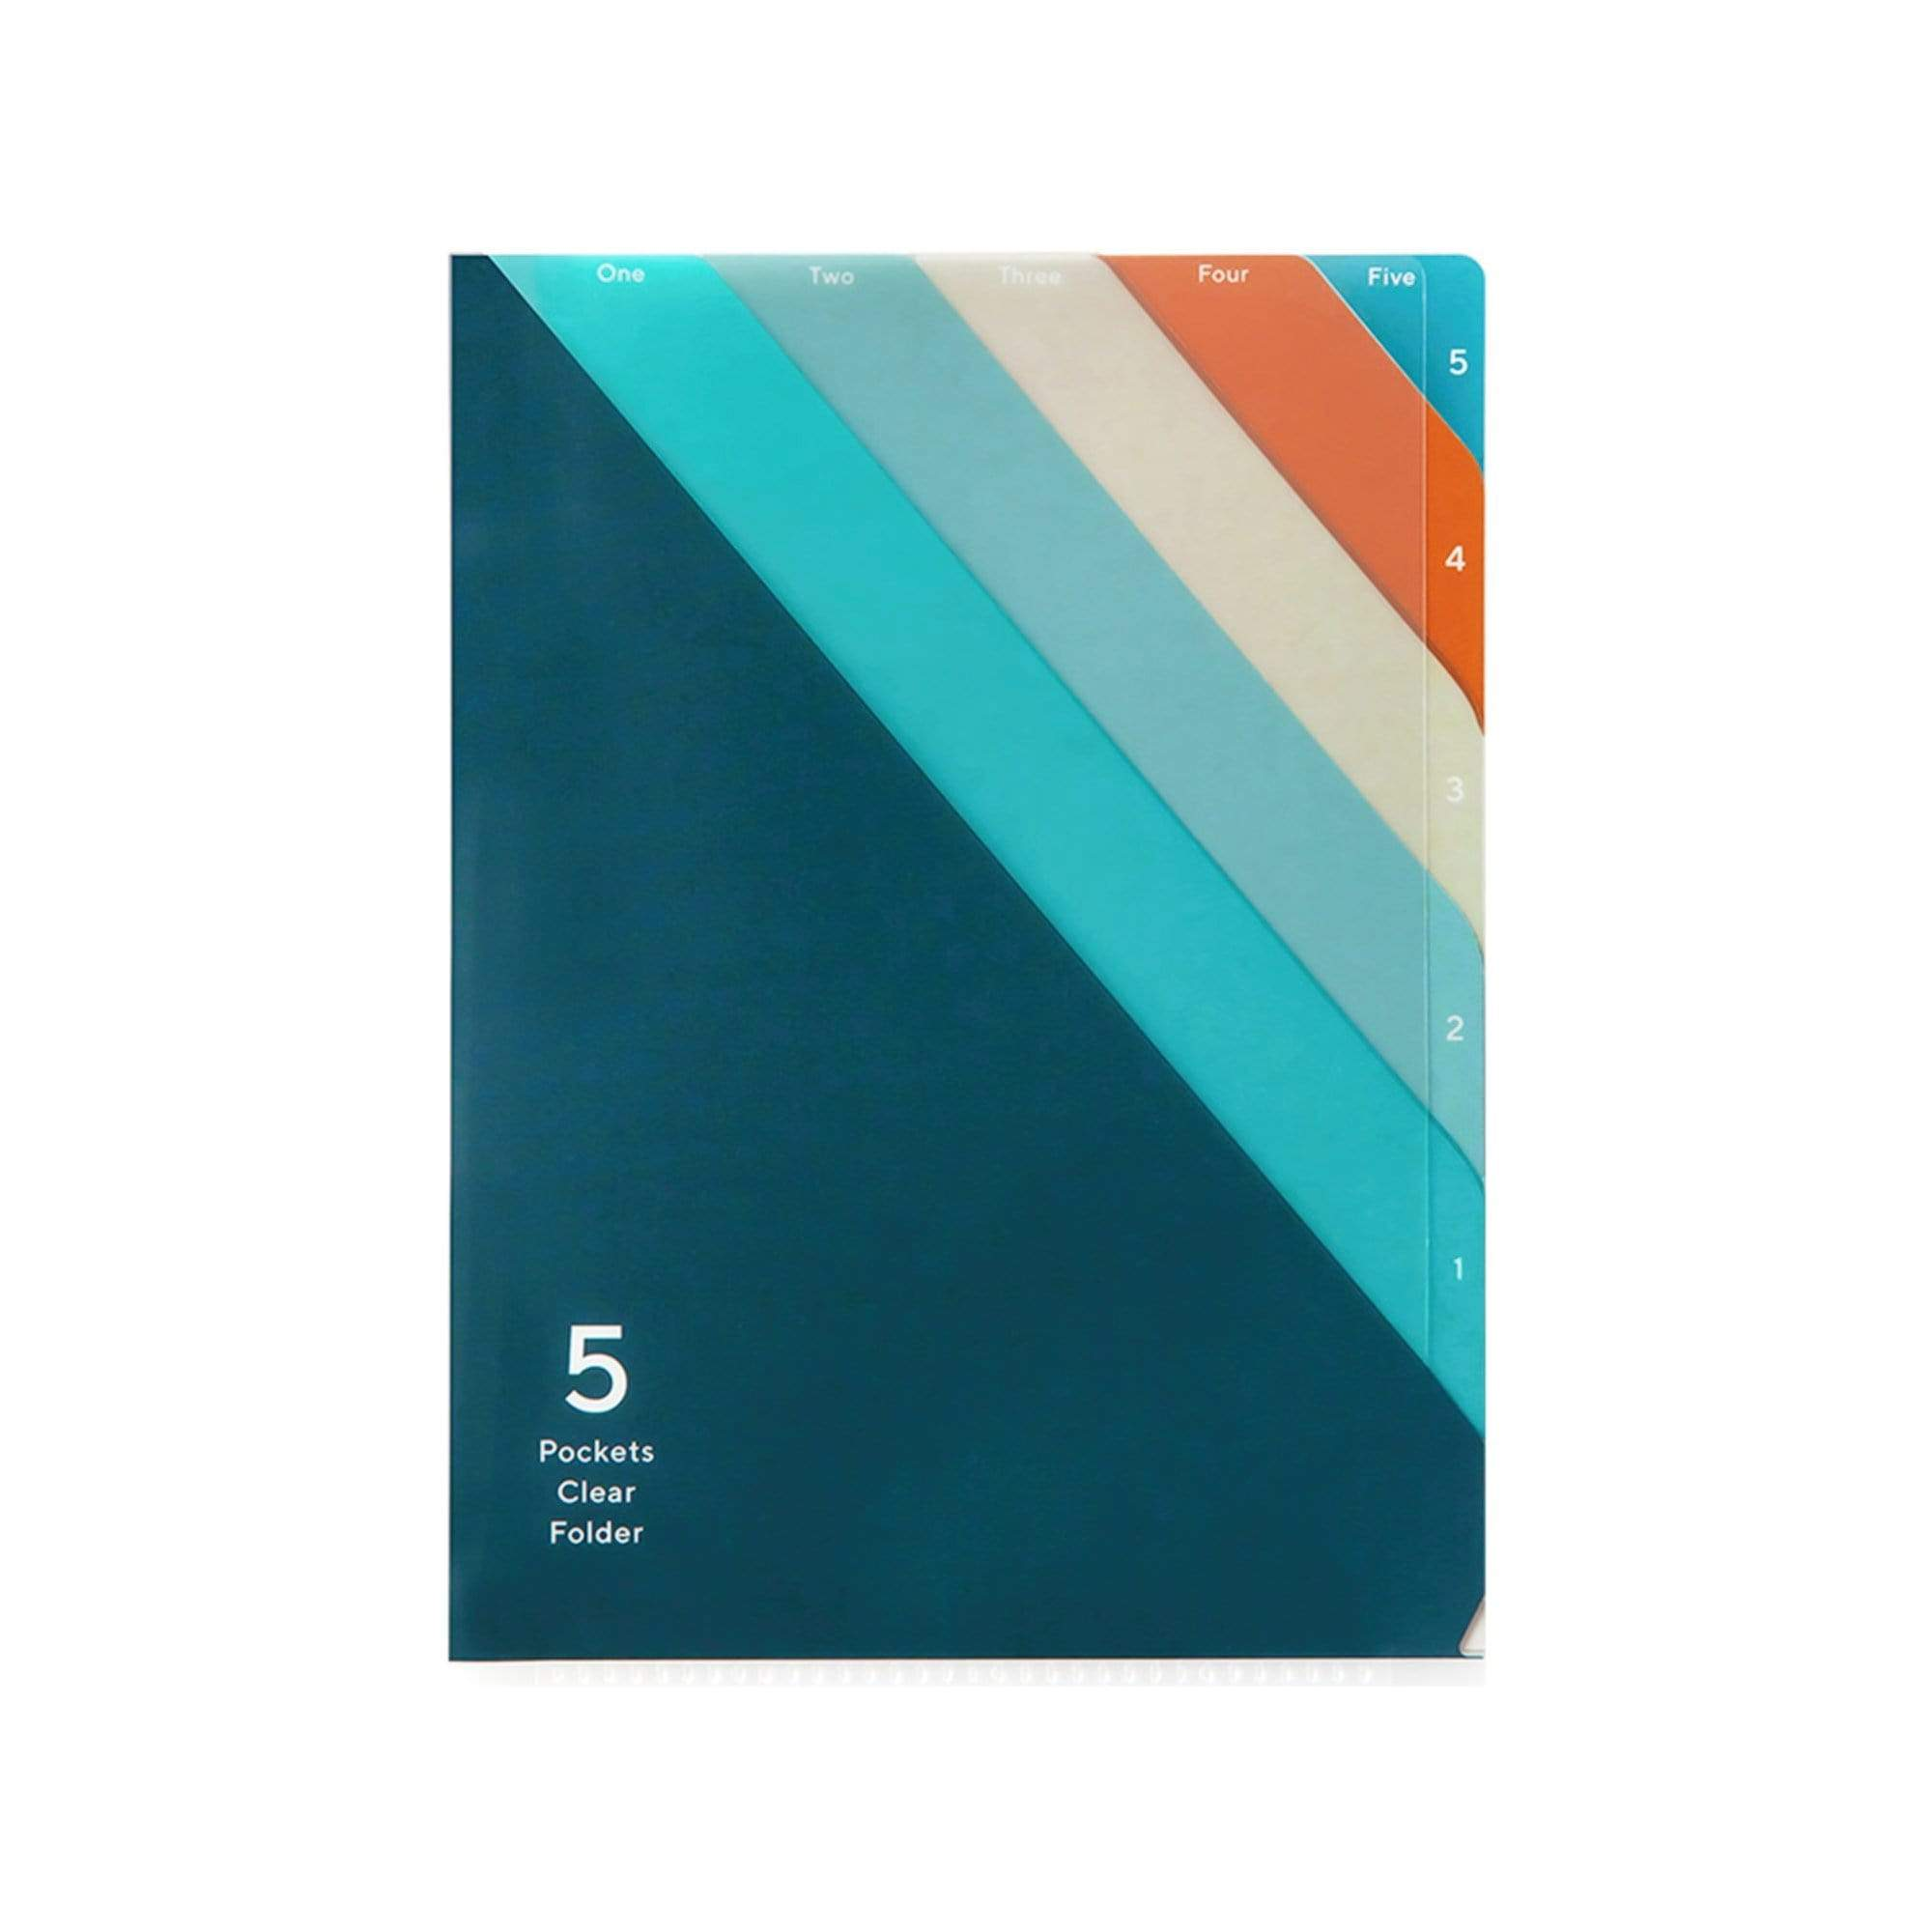 Midori MD A6 5 Pocket Clear Folder | Teal Diagonal Stripe - The Stationery Life!